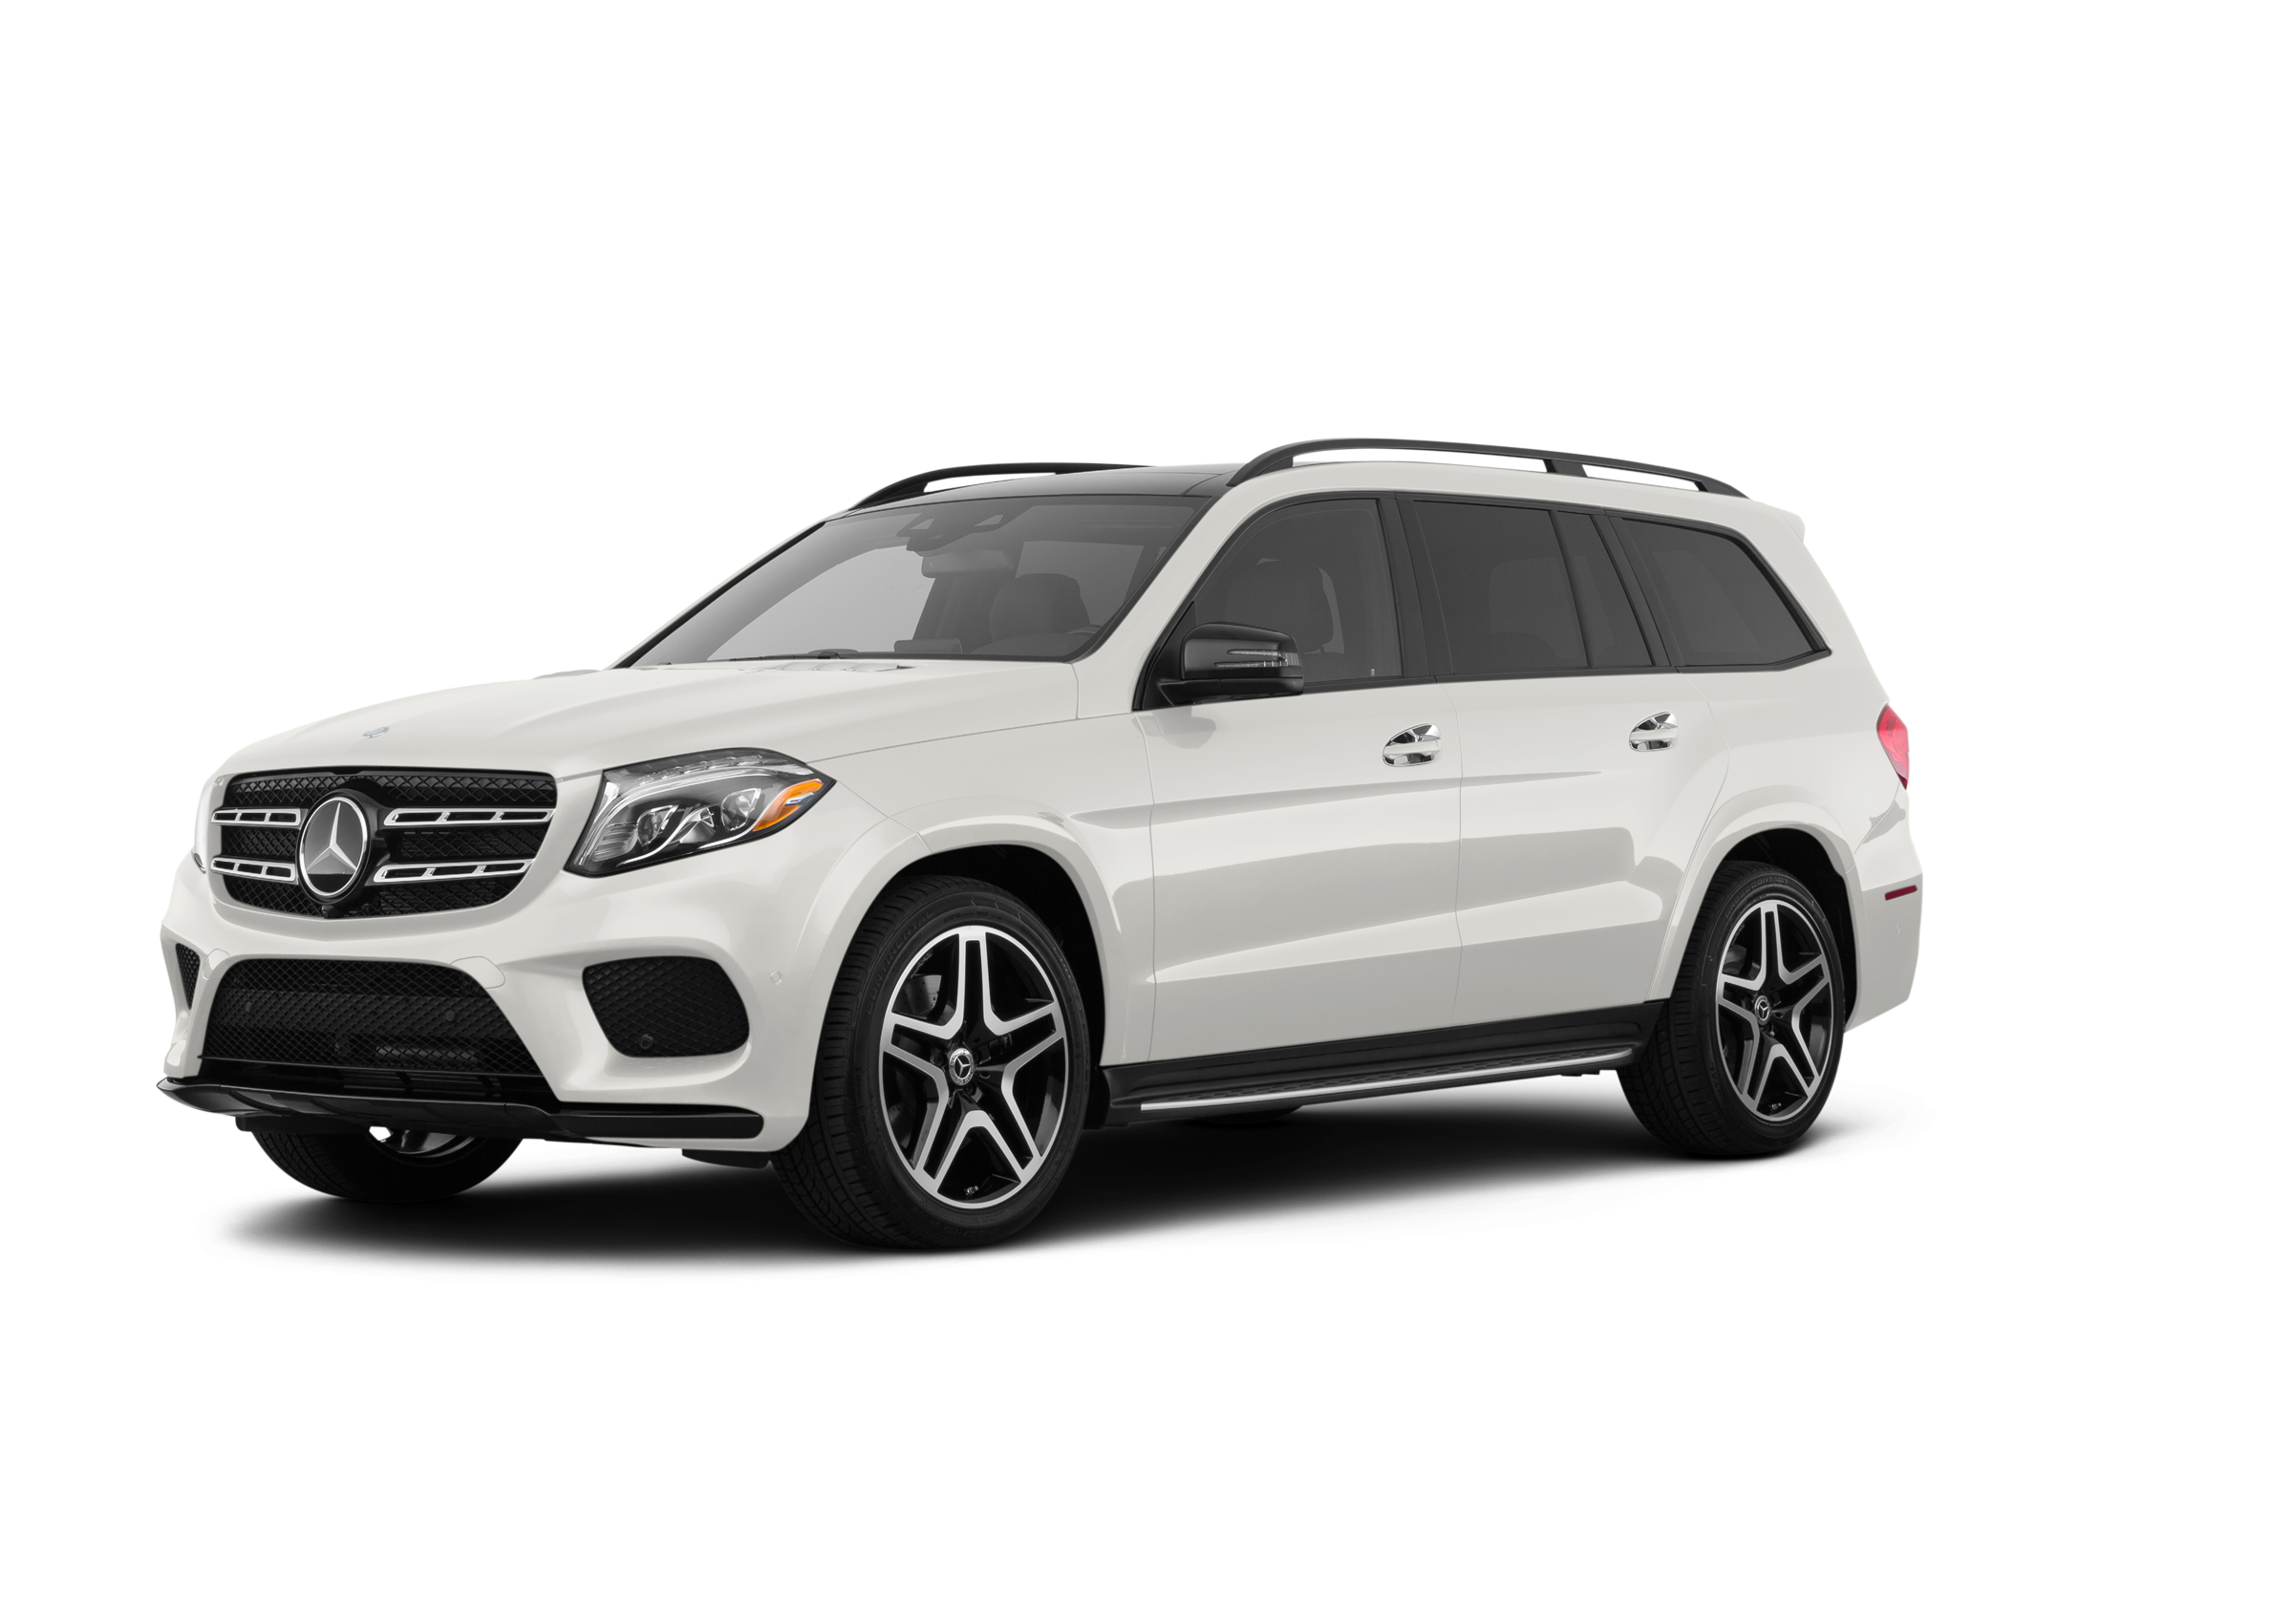 New 2019 Mercedes Benz Gls Suvs For Sale At Dealer Near Me Syracuse Ny Mercedes Benz Of Syracuse